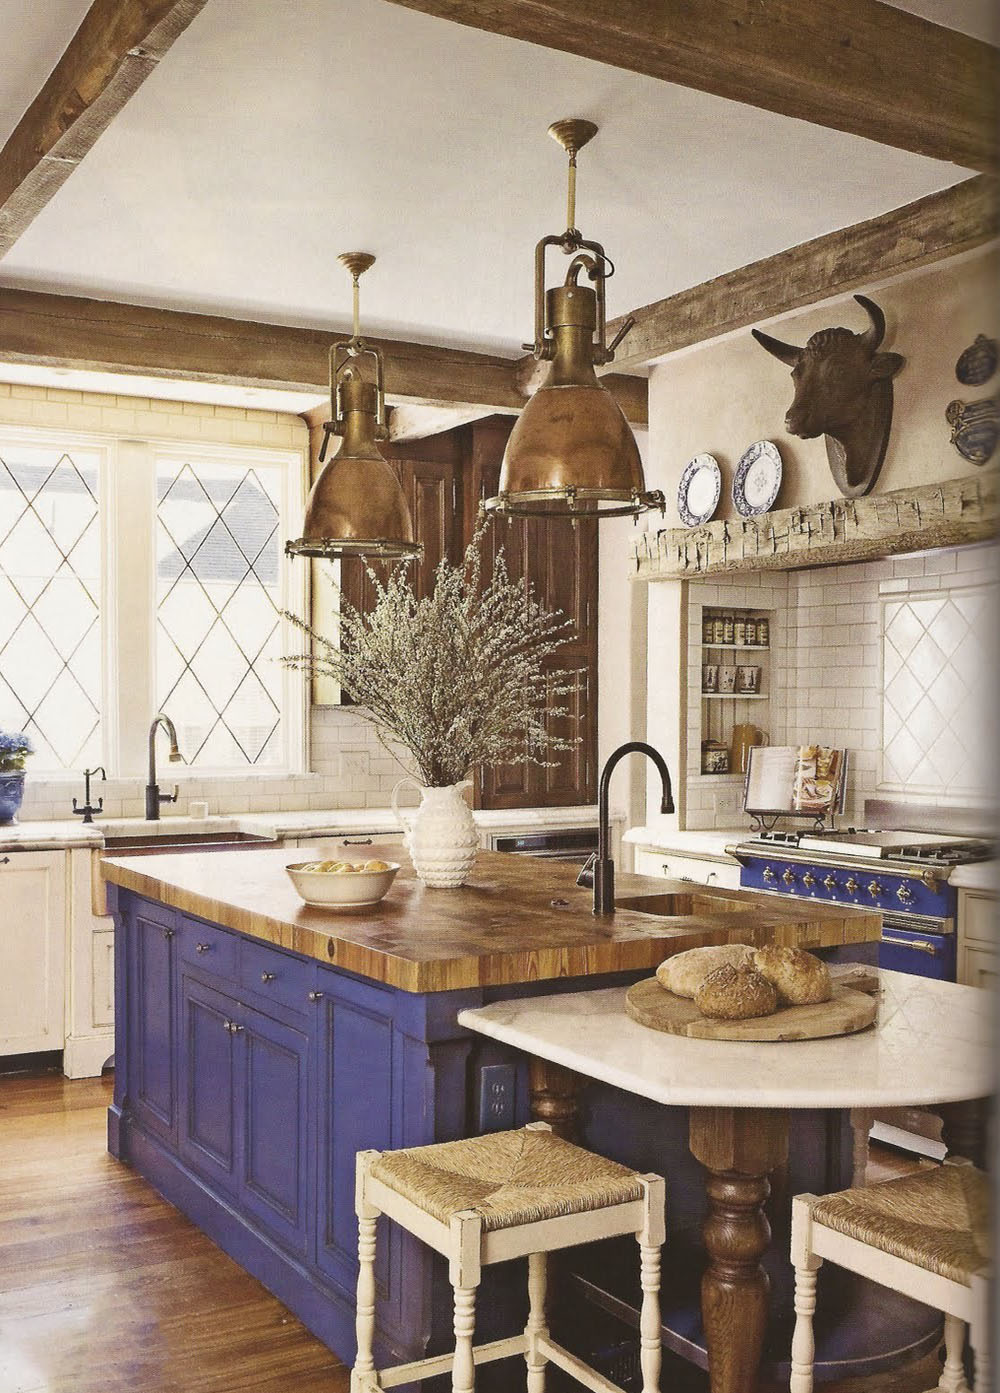 These 5 Rustic French Country Decorating Ideas Will Have You Ready